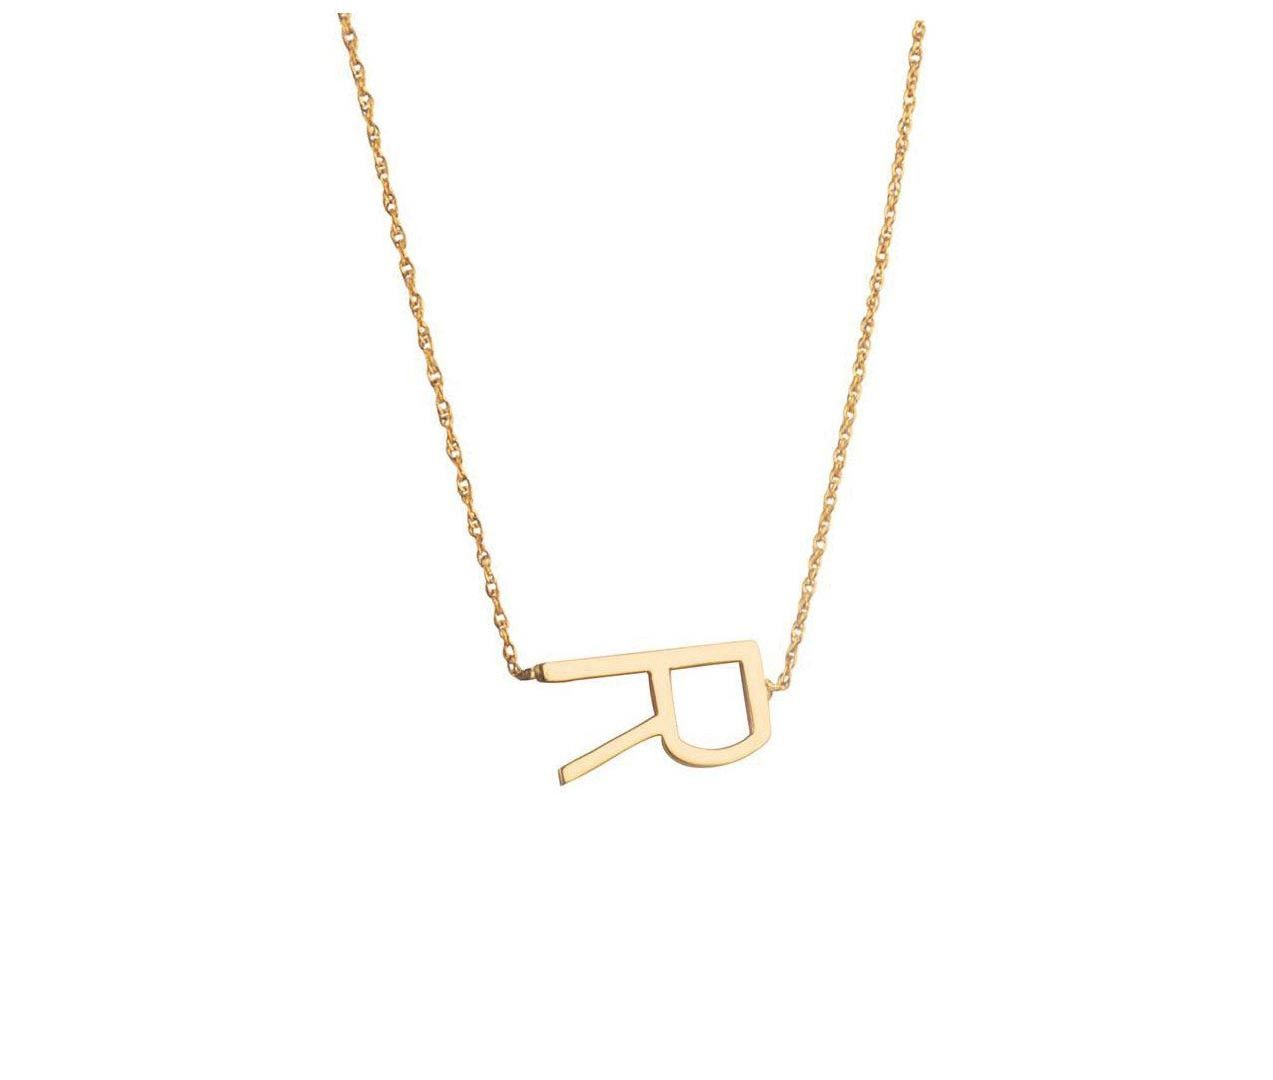 audrina alba patridge initial jessica outfits necklace chains sideways pin